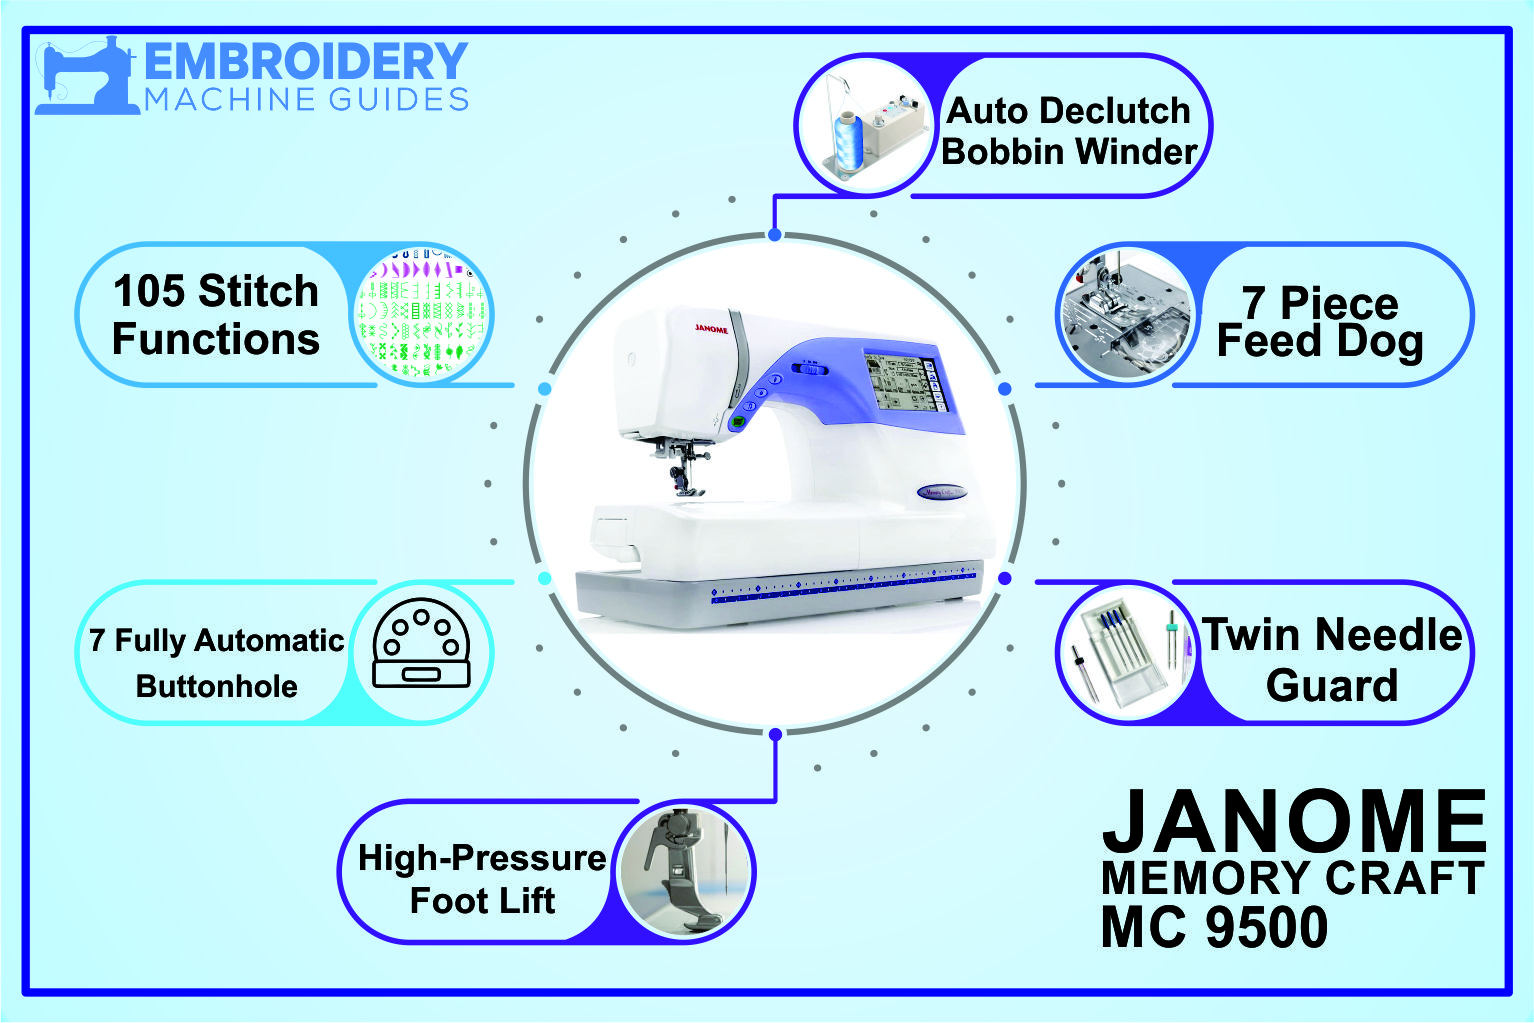 INFO GRAPHICS for quilting machine sewing embroidery